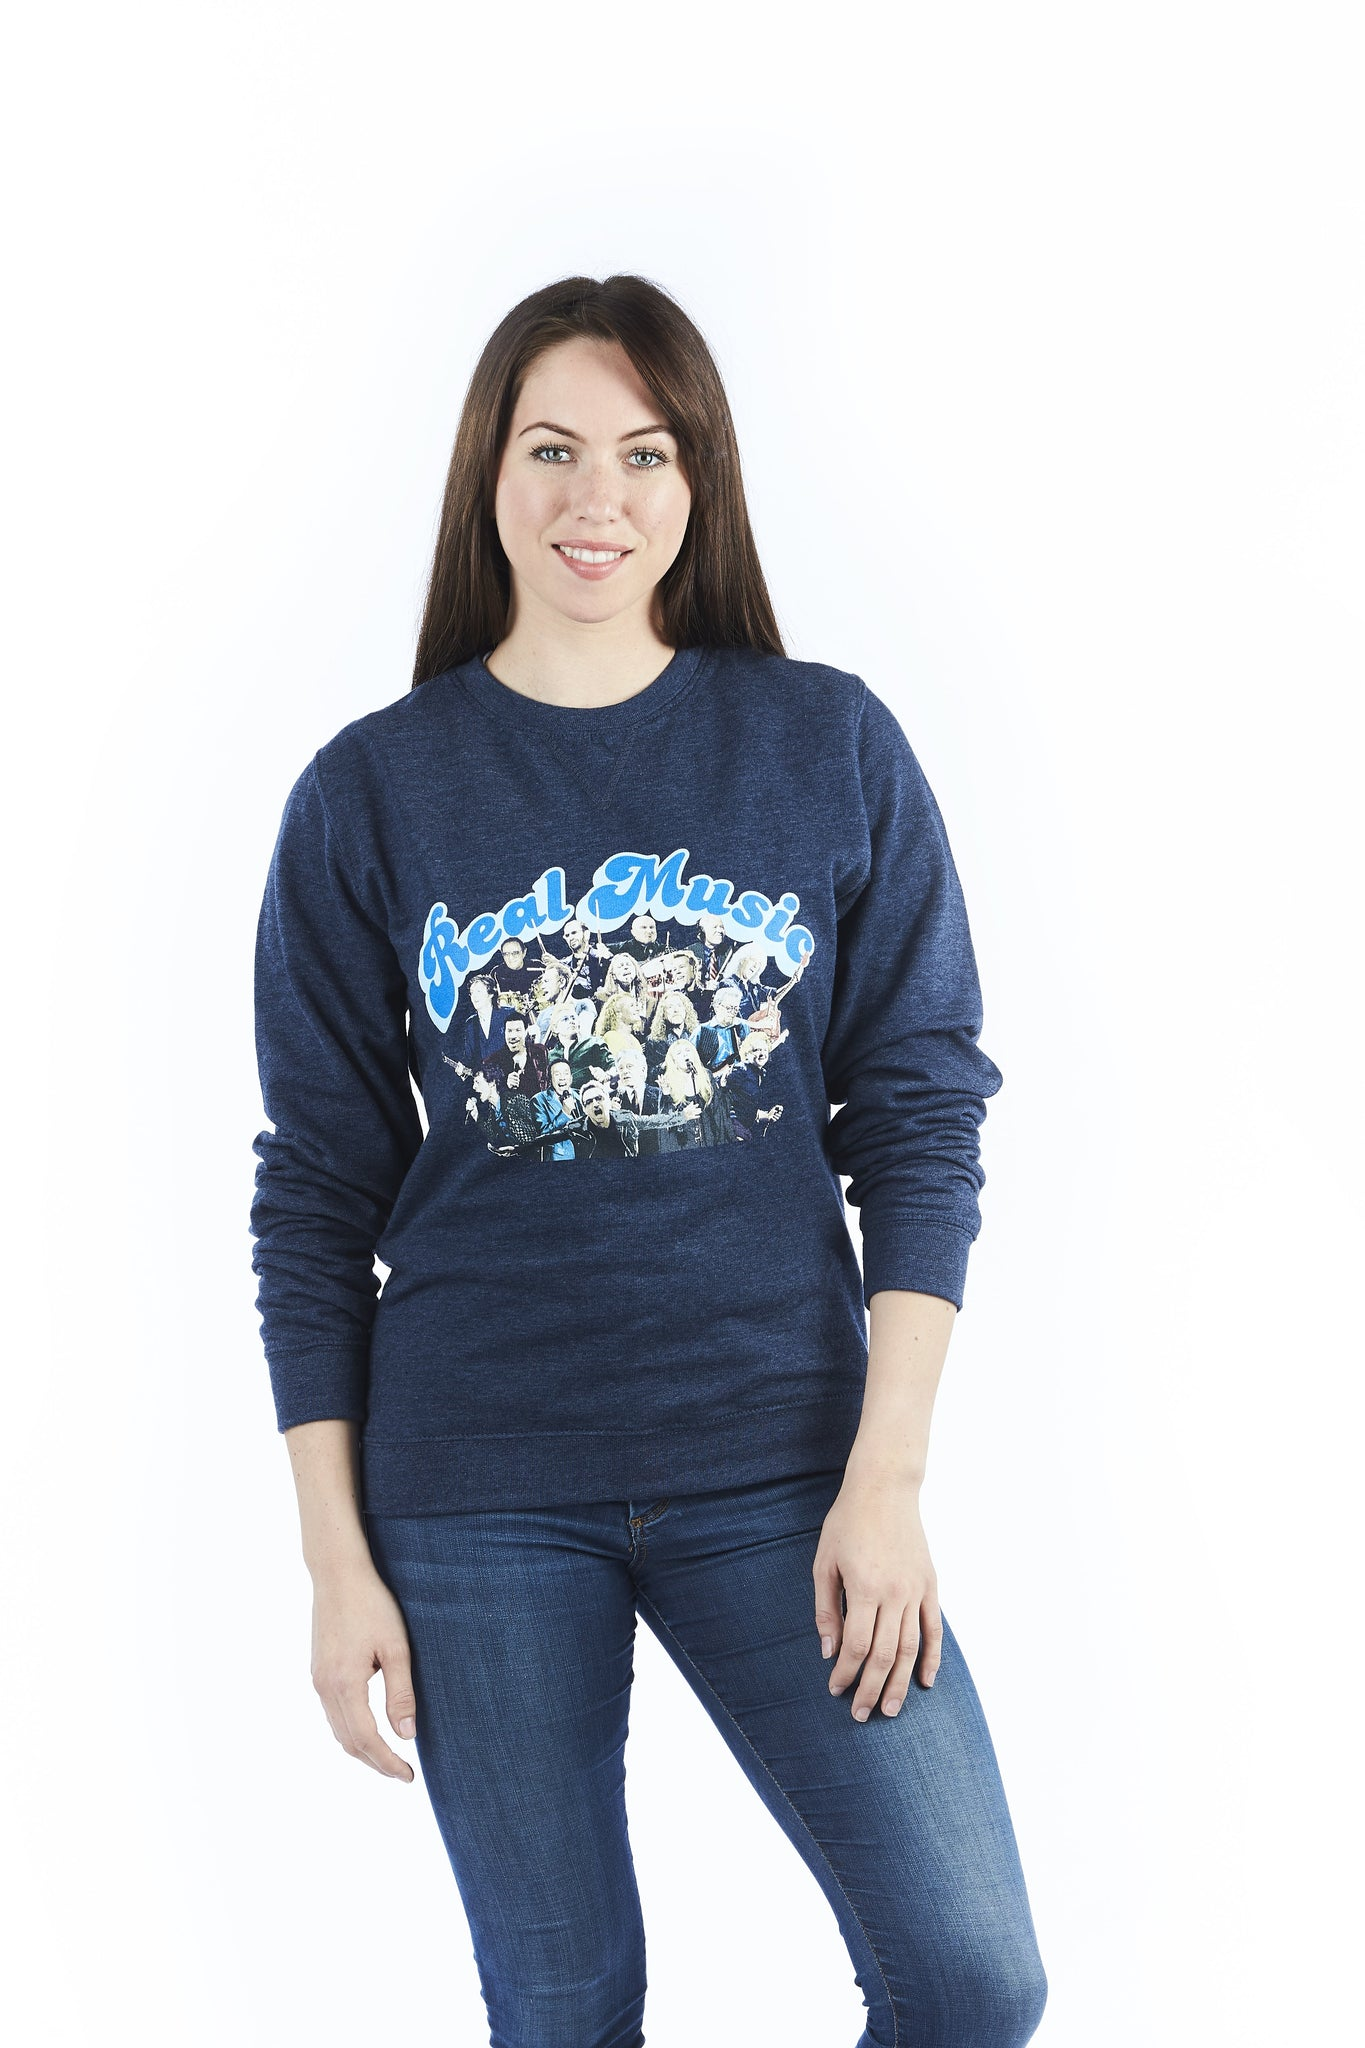 Real Music Sweatshirt - Women's